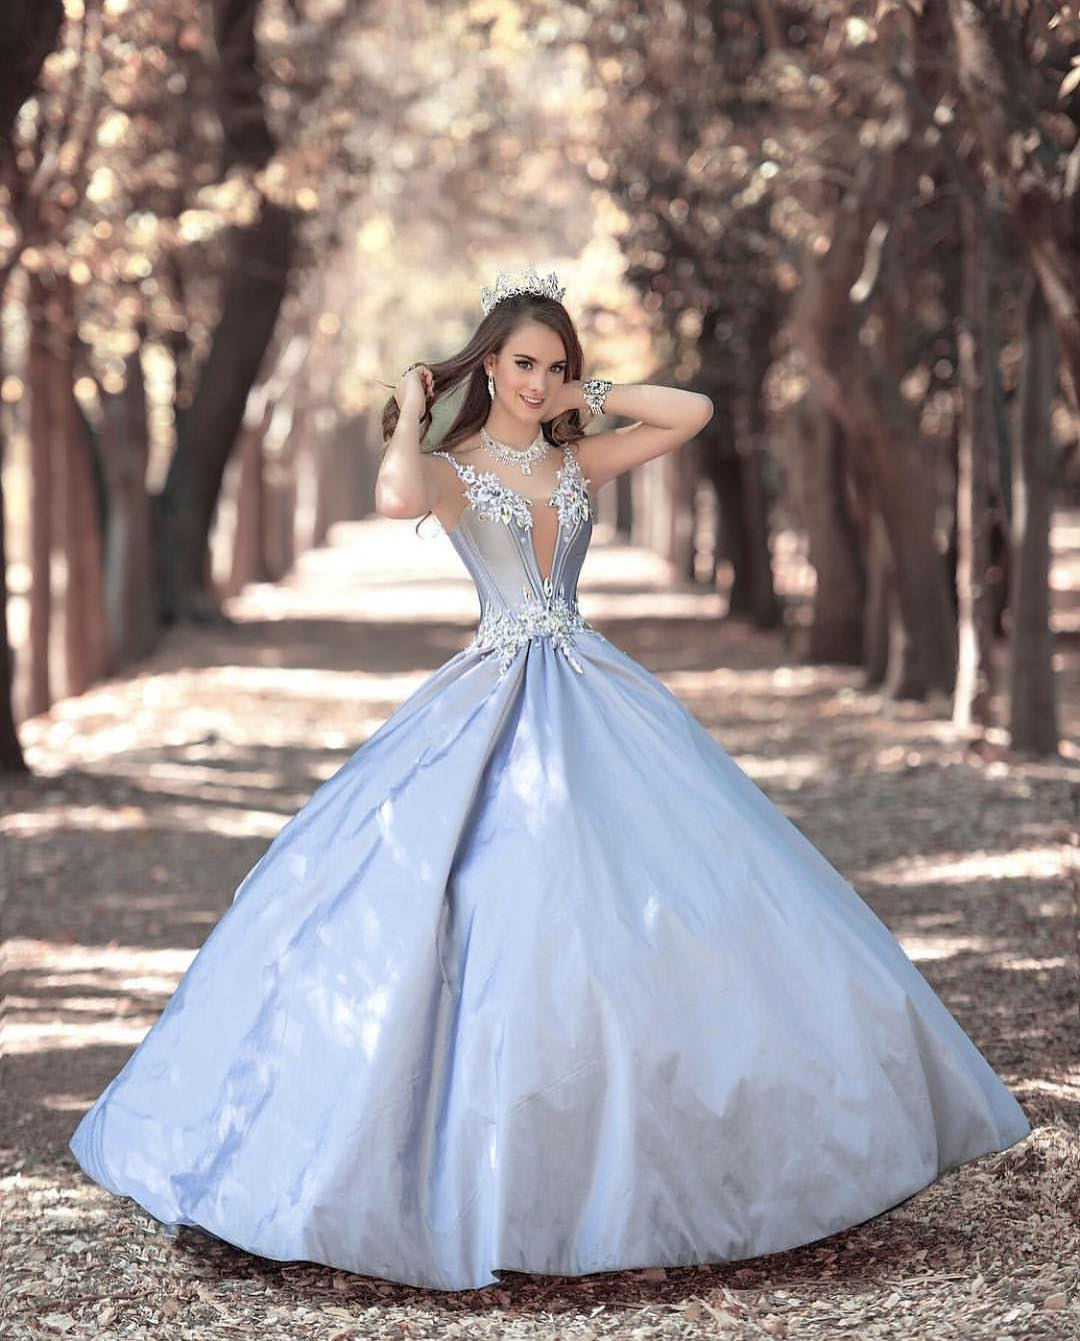 Sexy Quinceanera Dresses 2017 Burgundy Blue Princess Quinceanera Dress  Satin Sweetheart Crystal Off the Shoulder Sweet 16 Dress Prom Ball Gowns  vestidos de ... c807907dd7e2